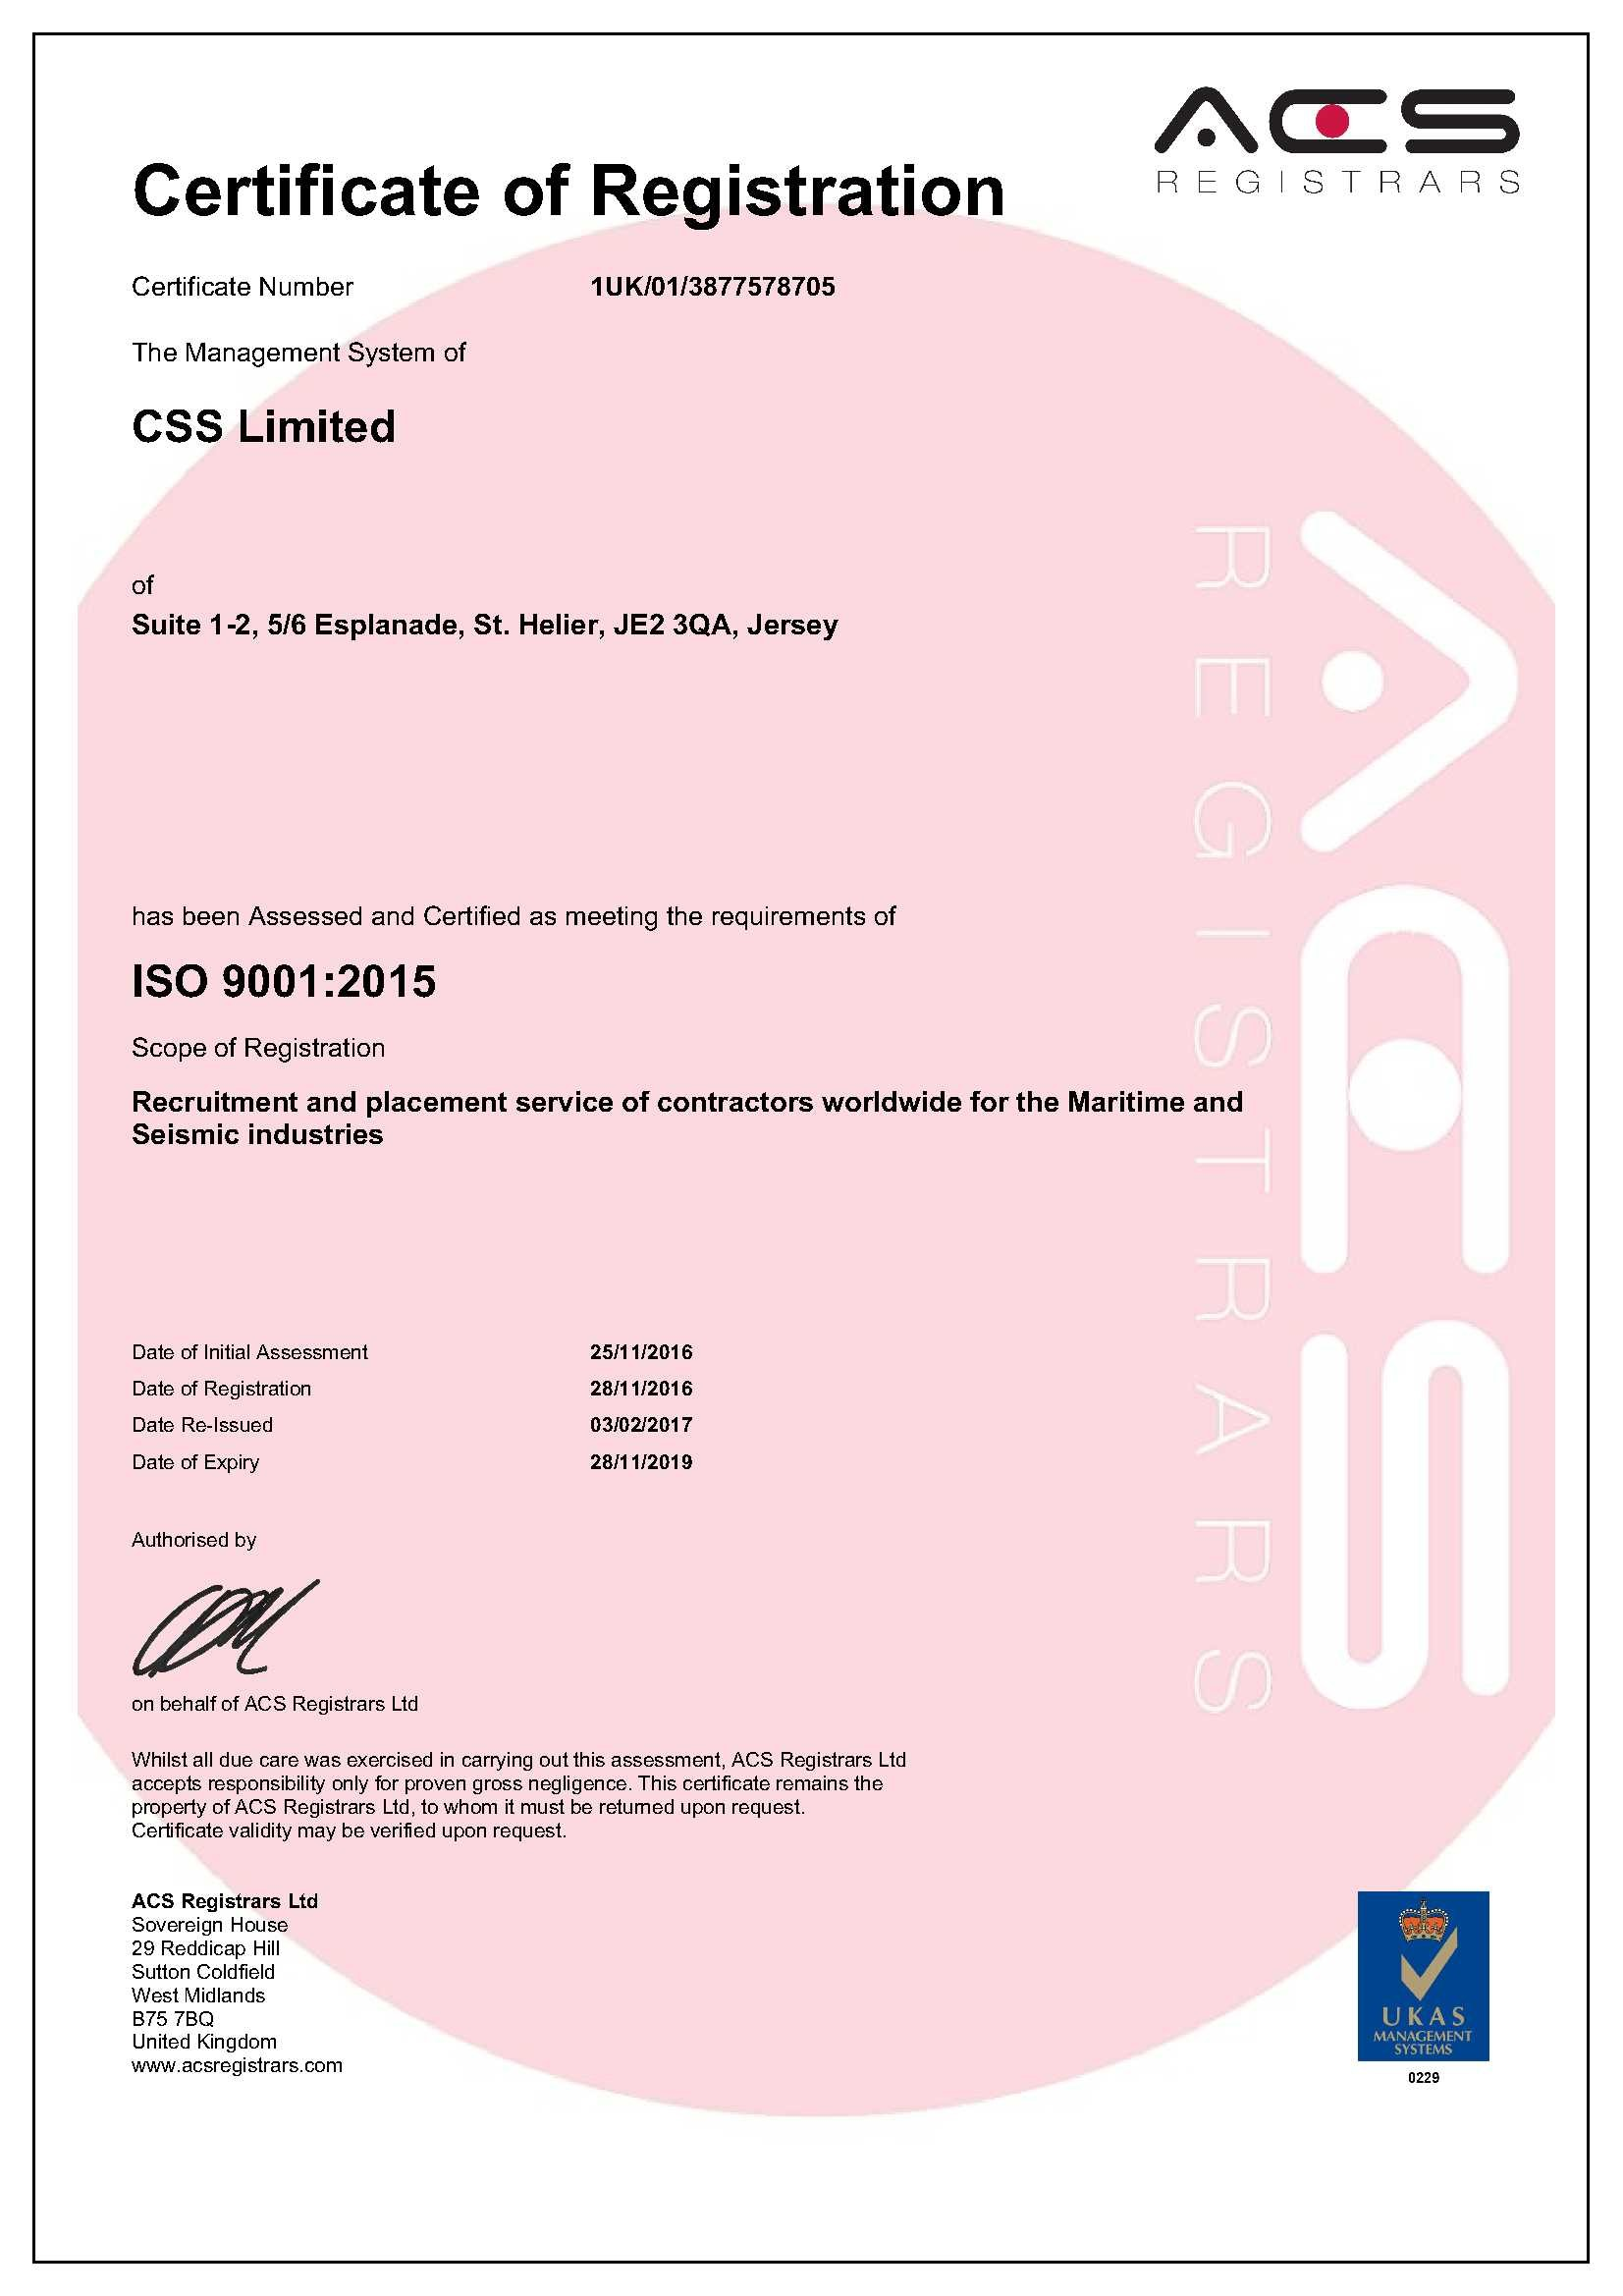 CSS Limited (was Channel Ship) Name change 9001 Cert 06.02.17.jpg